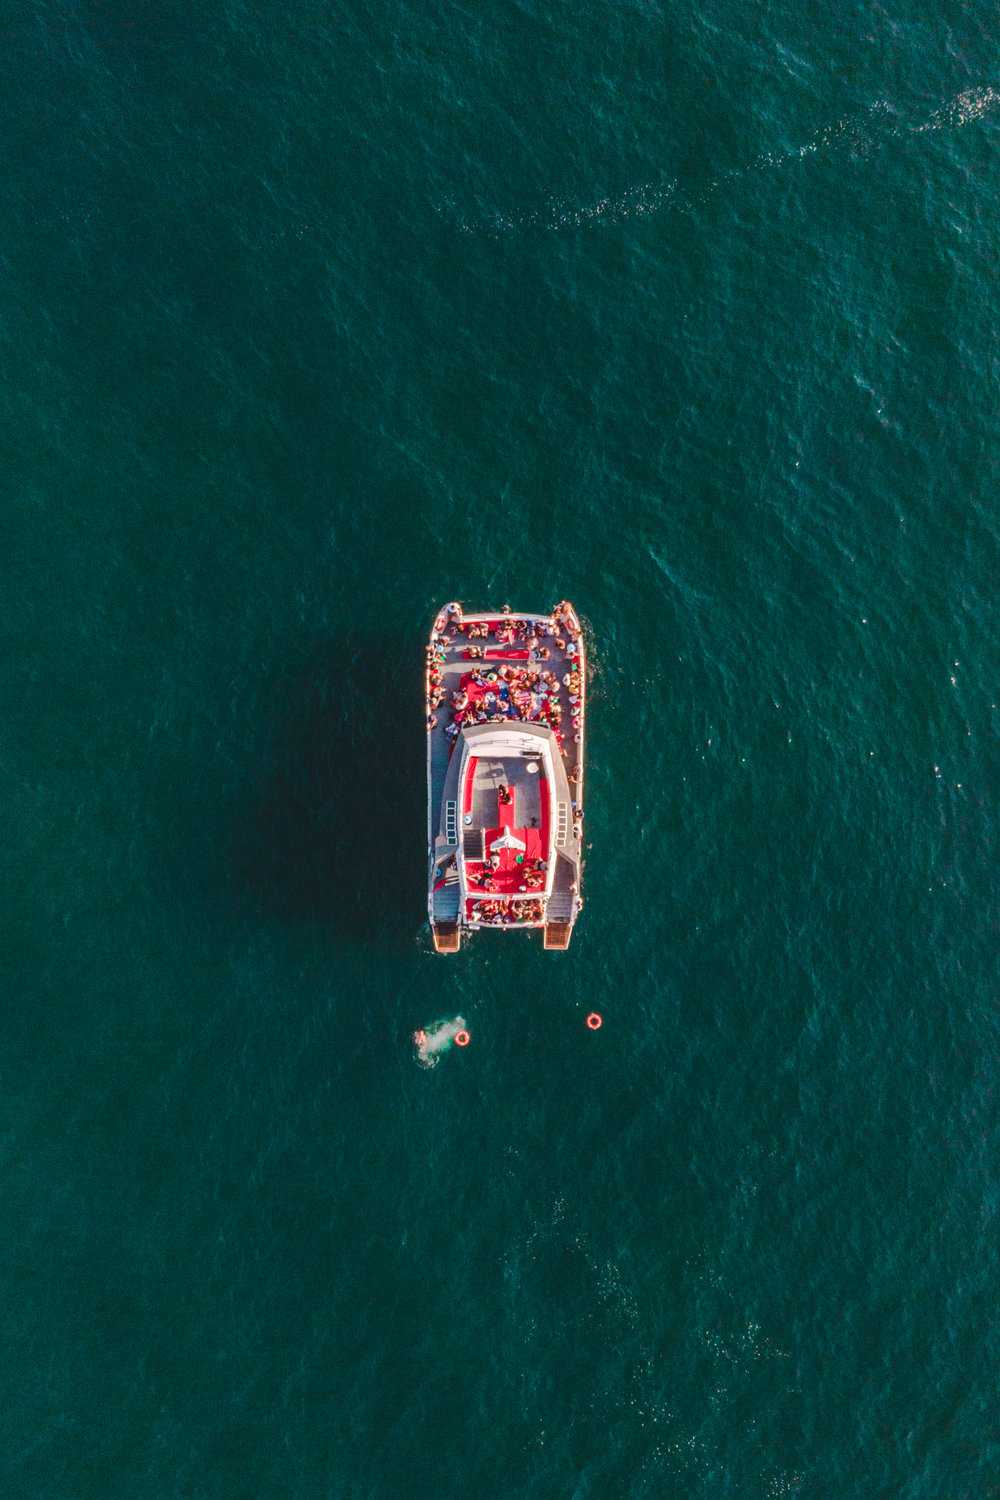 Aerial view of a party boat.